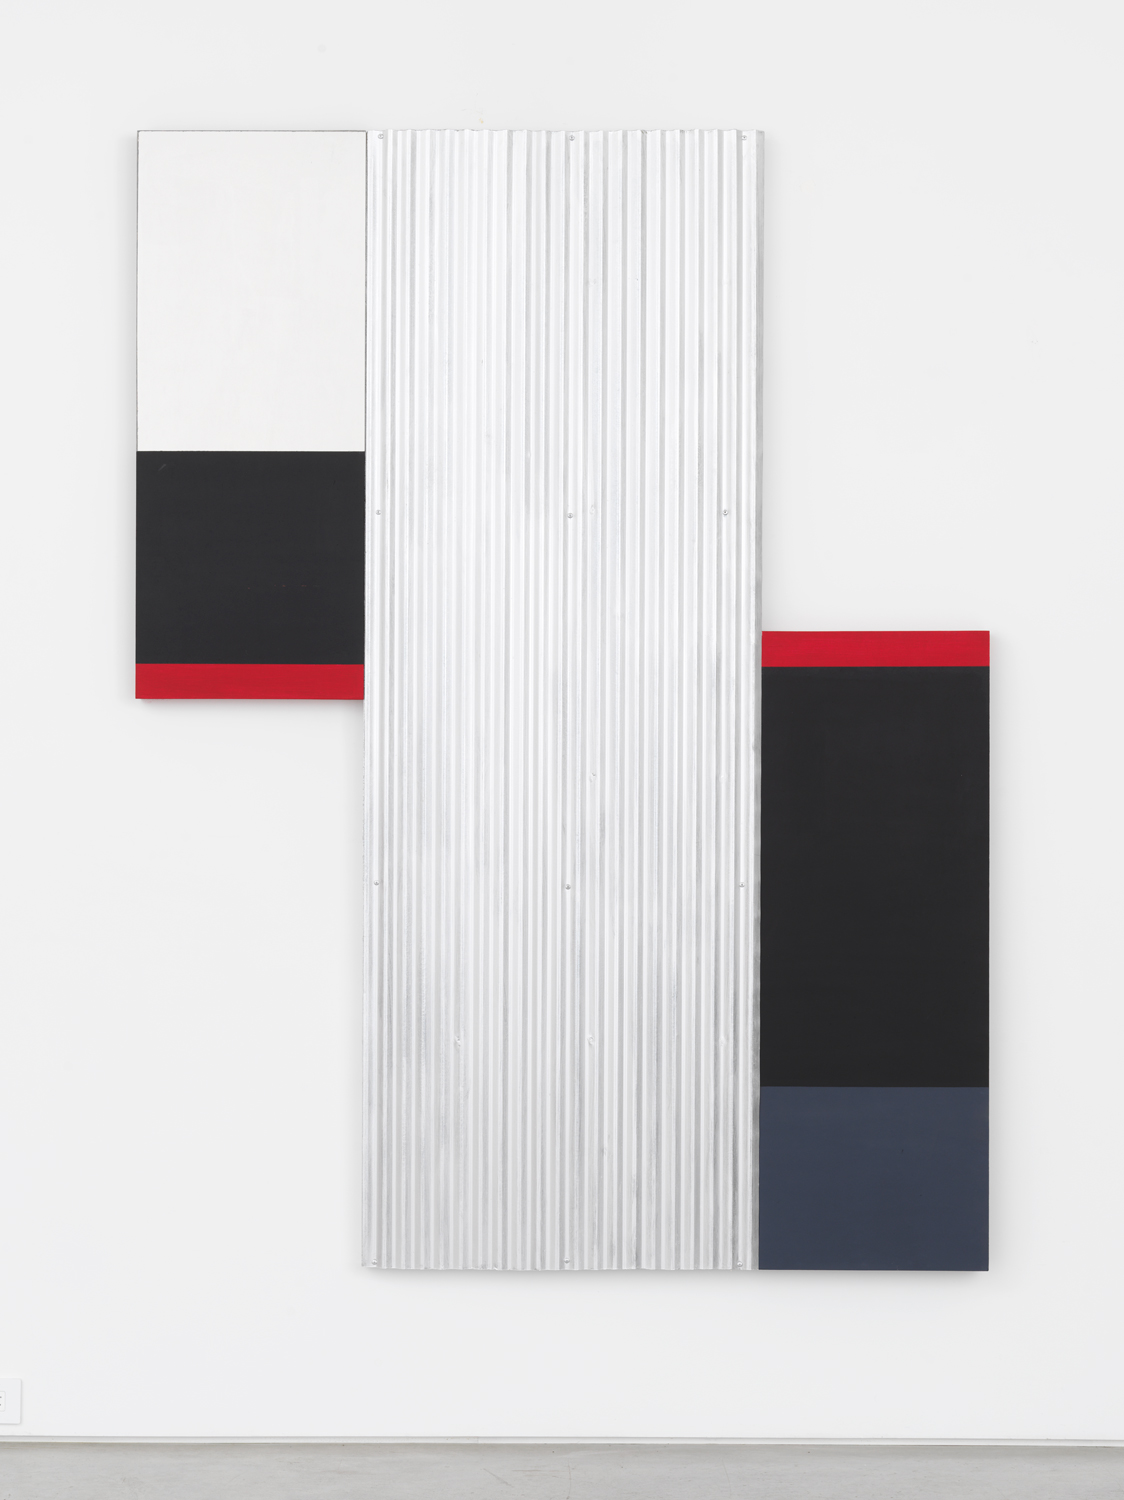 Don Dudley, XVIII, 2014-15, oil-based aluminum enamel and acrylic on birch plywood and corrugated metal, 74.50h x 56w x 2d in.